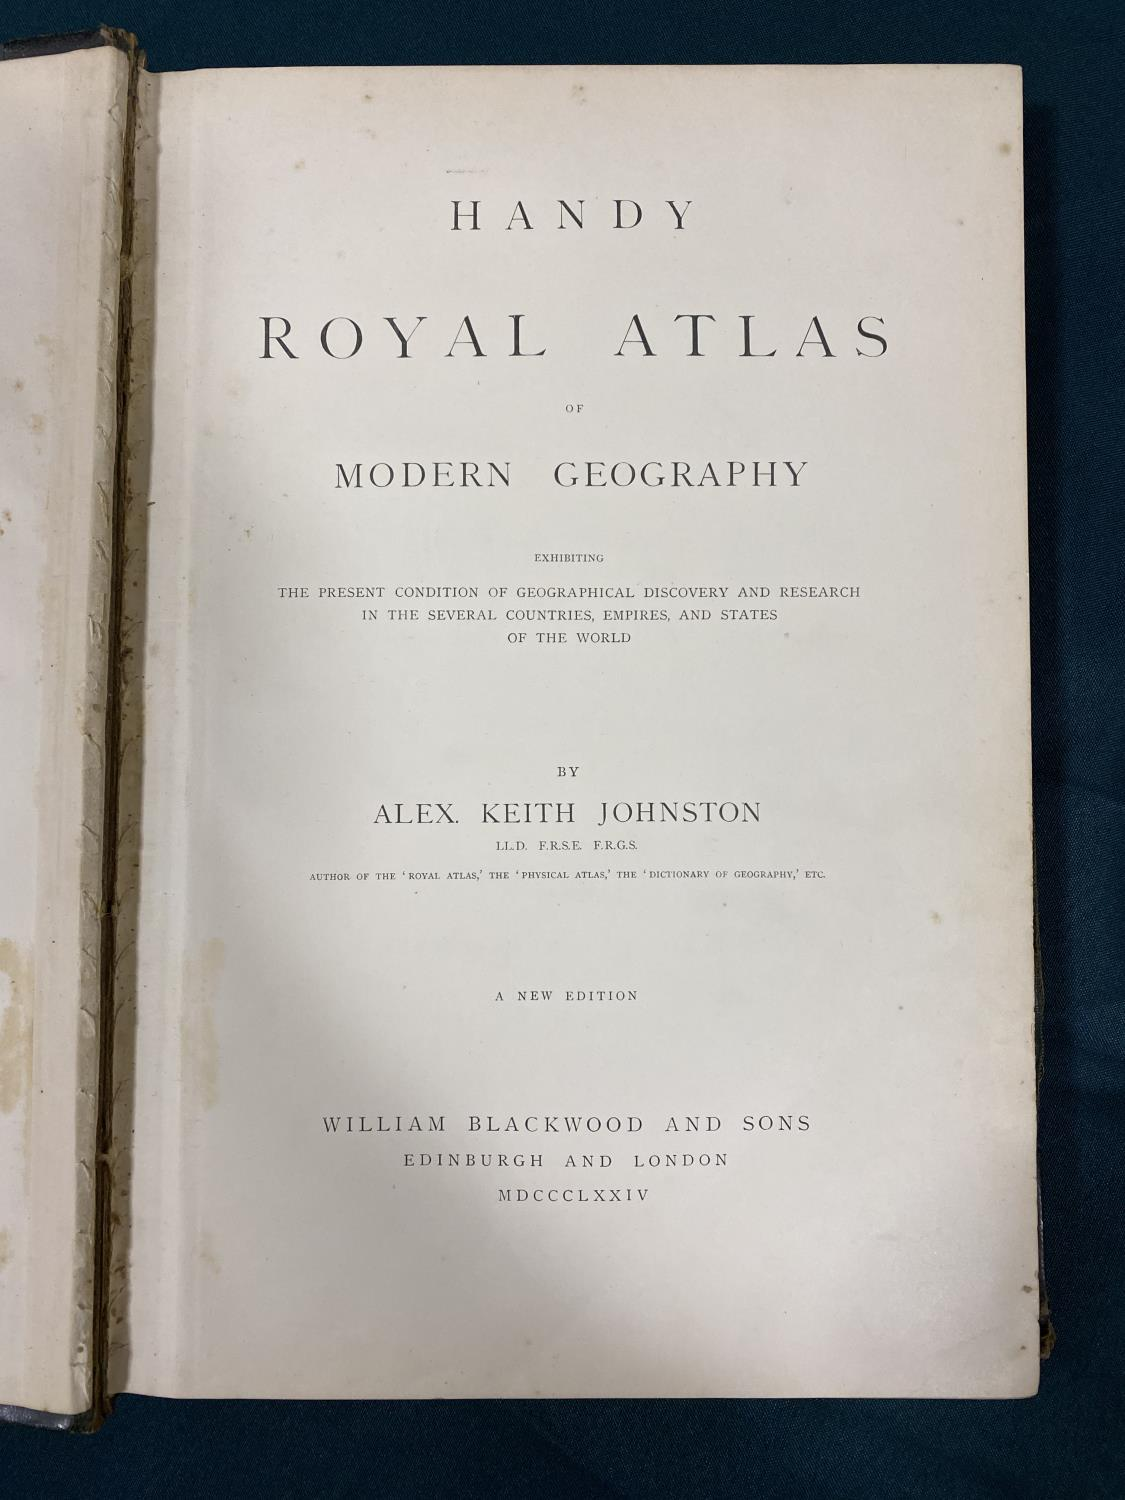 Johnston, Alexander Keith. Handy Royal Atlas of Modern Geography, new edition, 45 double-page maps - Image 2 of 3